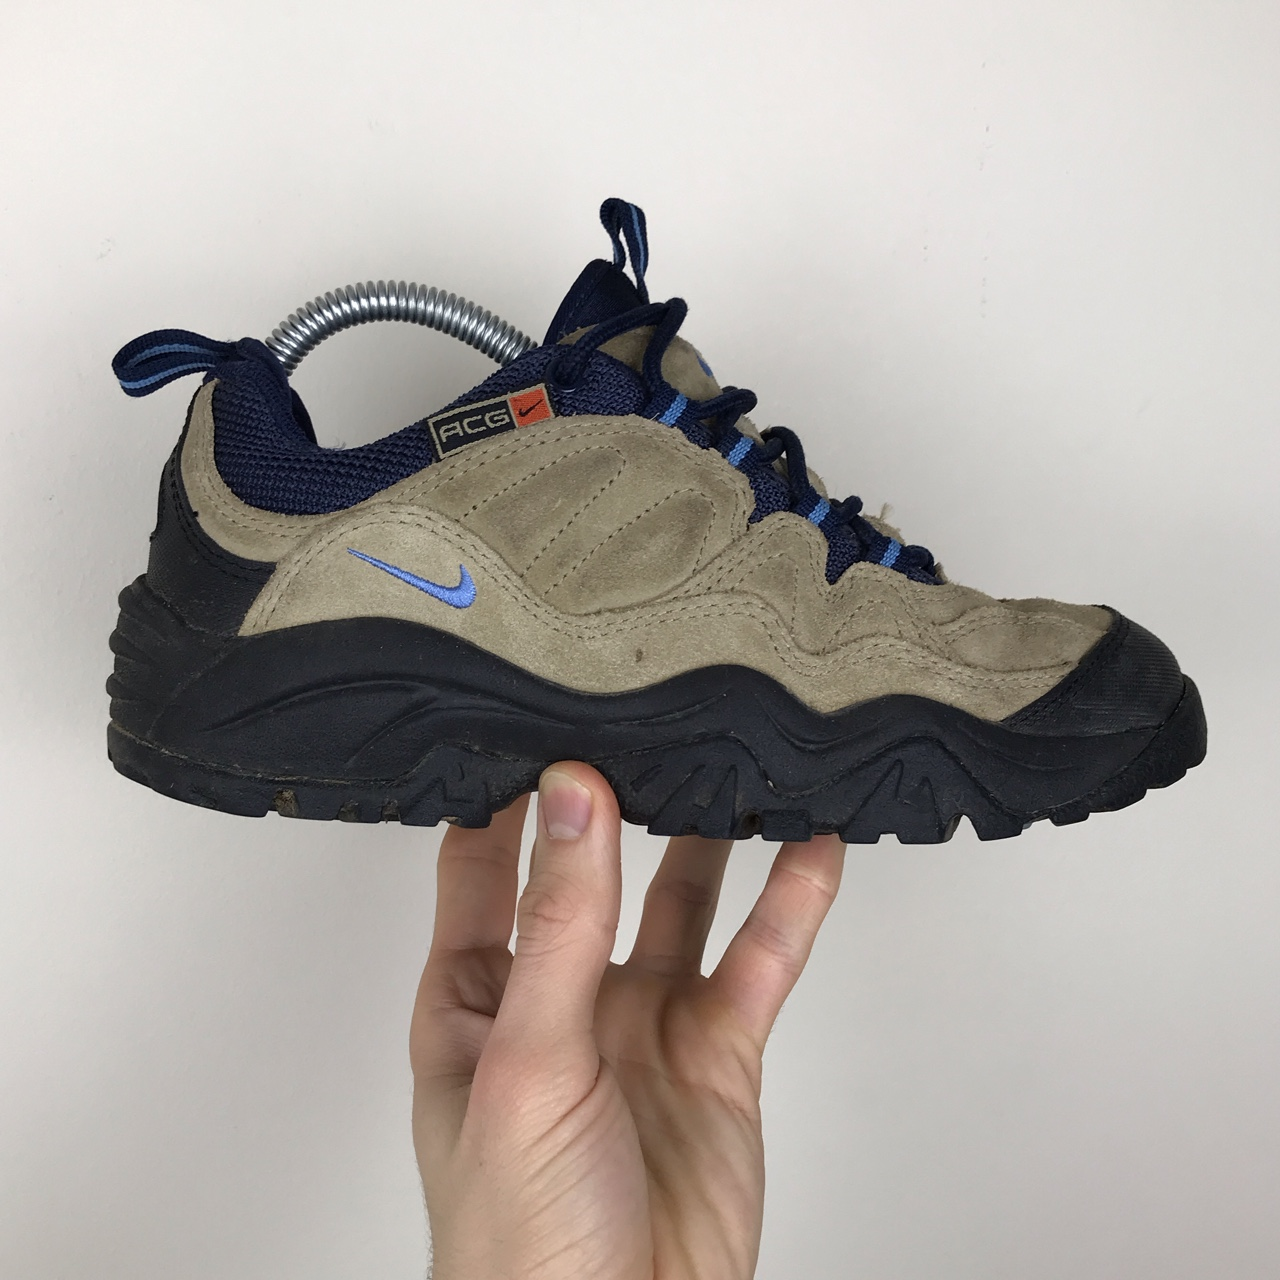 Vintage and dope Nike ACG trainers or